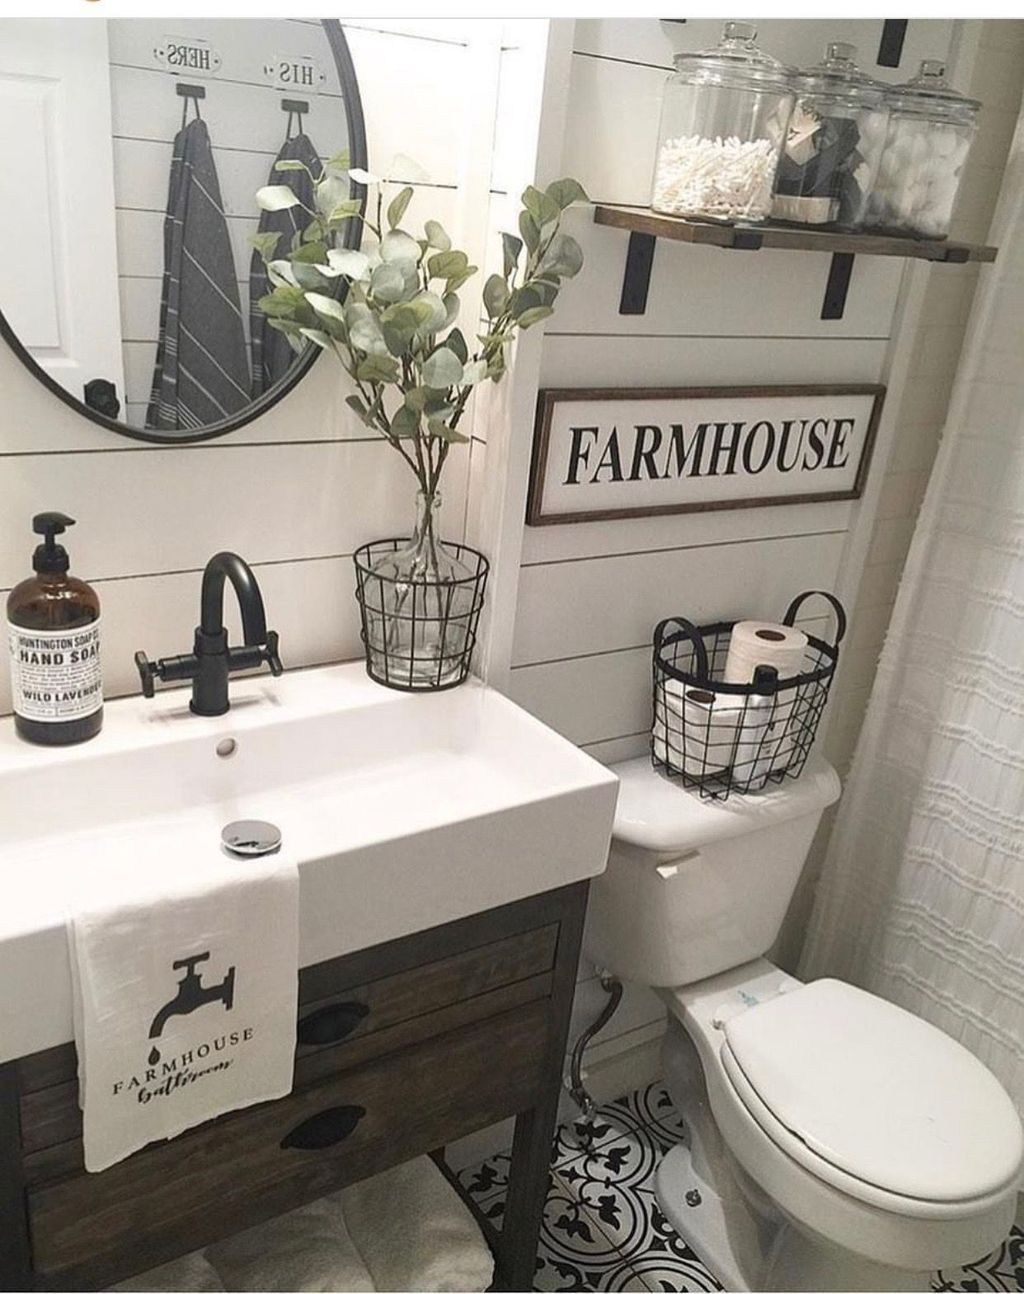 46 Gorgeous Farmhouse Bathroom Ideas With Rustic Designs With